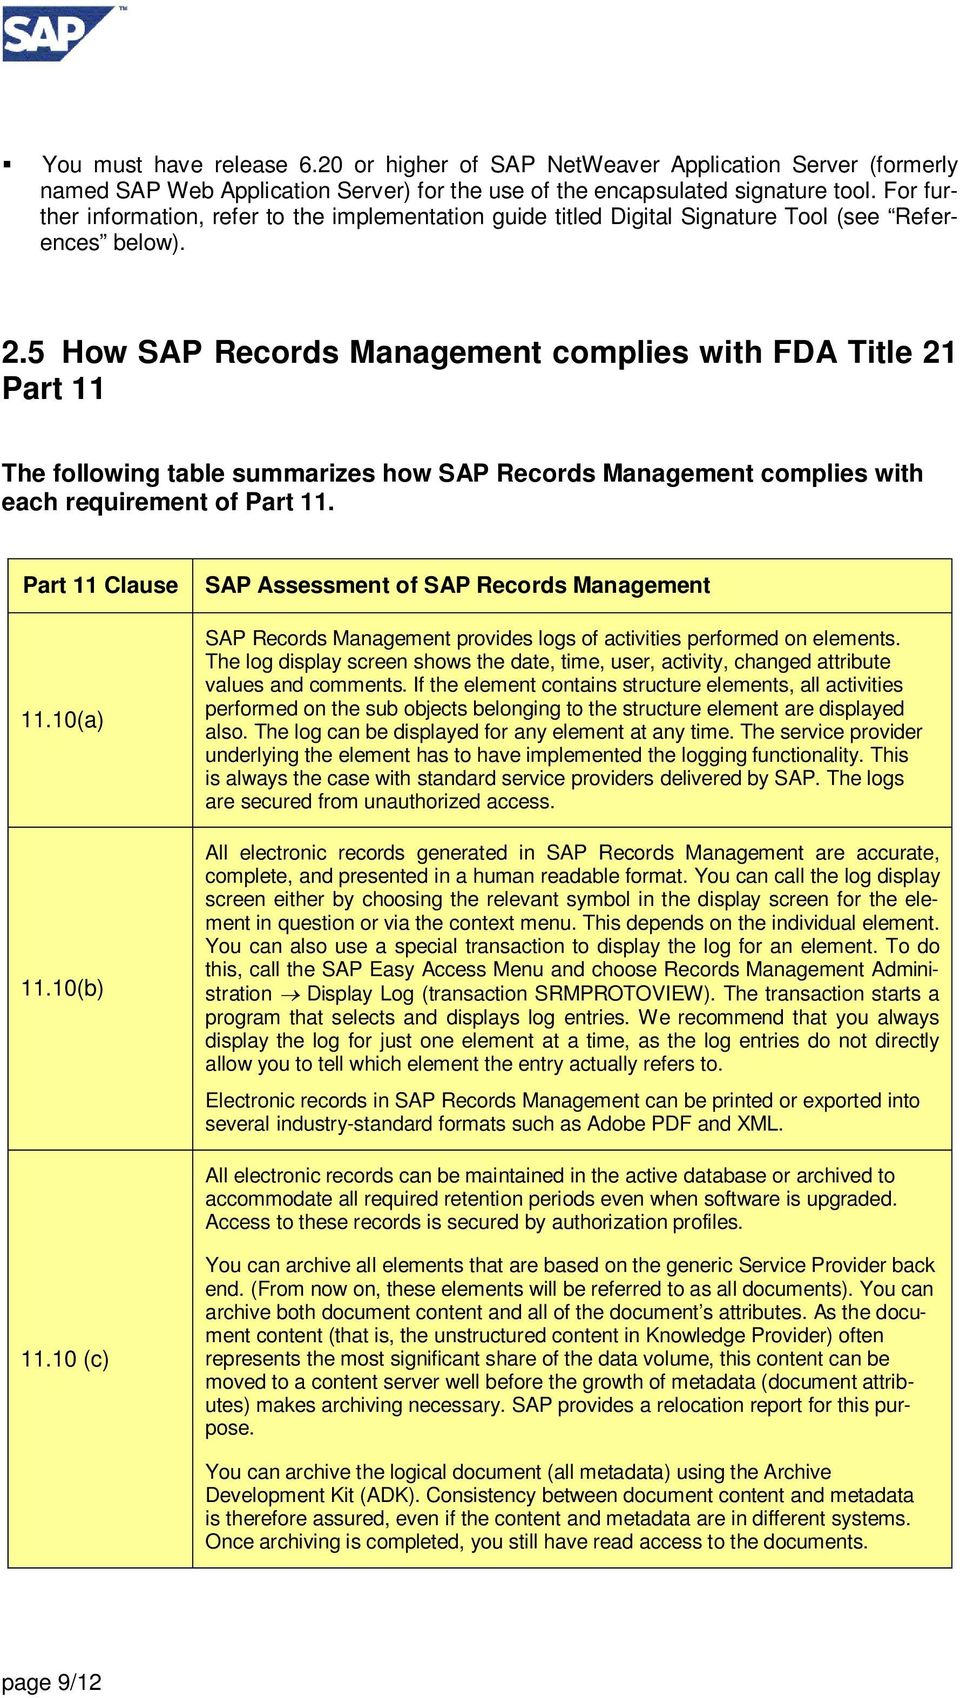 5 How SAP Records Management complies with FDA Title 21 Part 11 The following table summarizes how SAP Records Management complies with each requirement of Part 11. Part 11 Clause 11.10(a) 11.